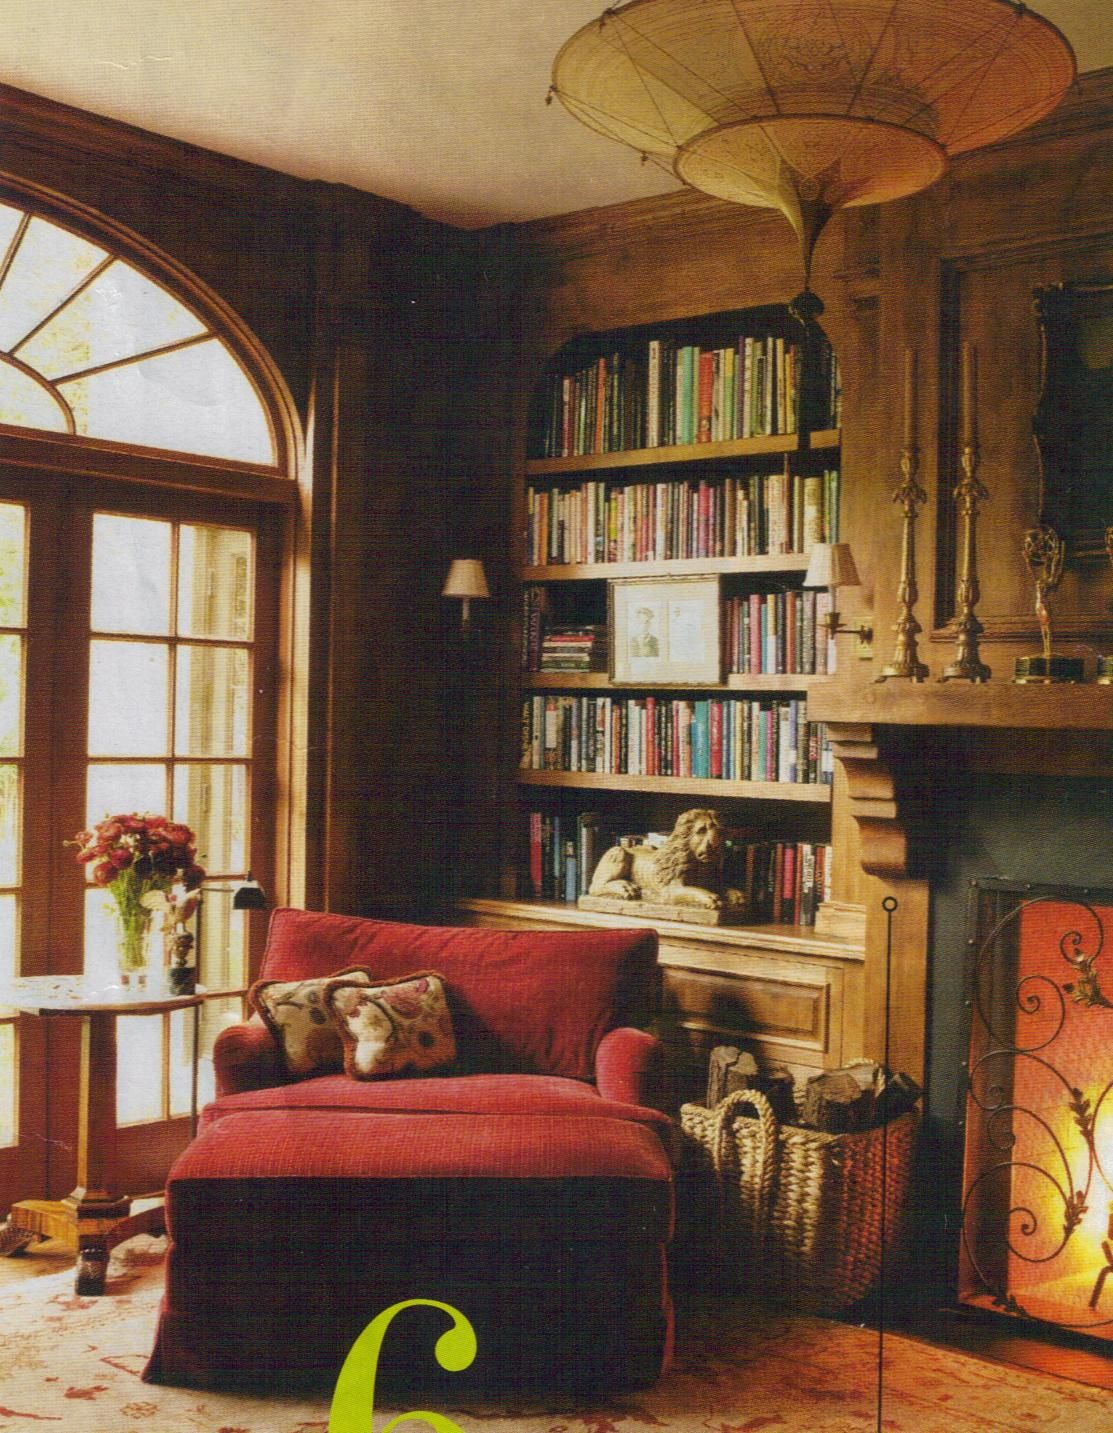 Big Chair By A Fireplace Perfect For Reading On A Chilly Day Cozy Home Library Cozy House Home